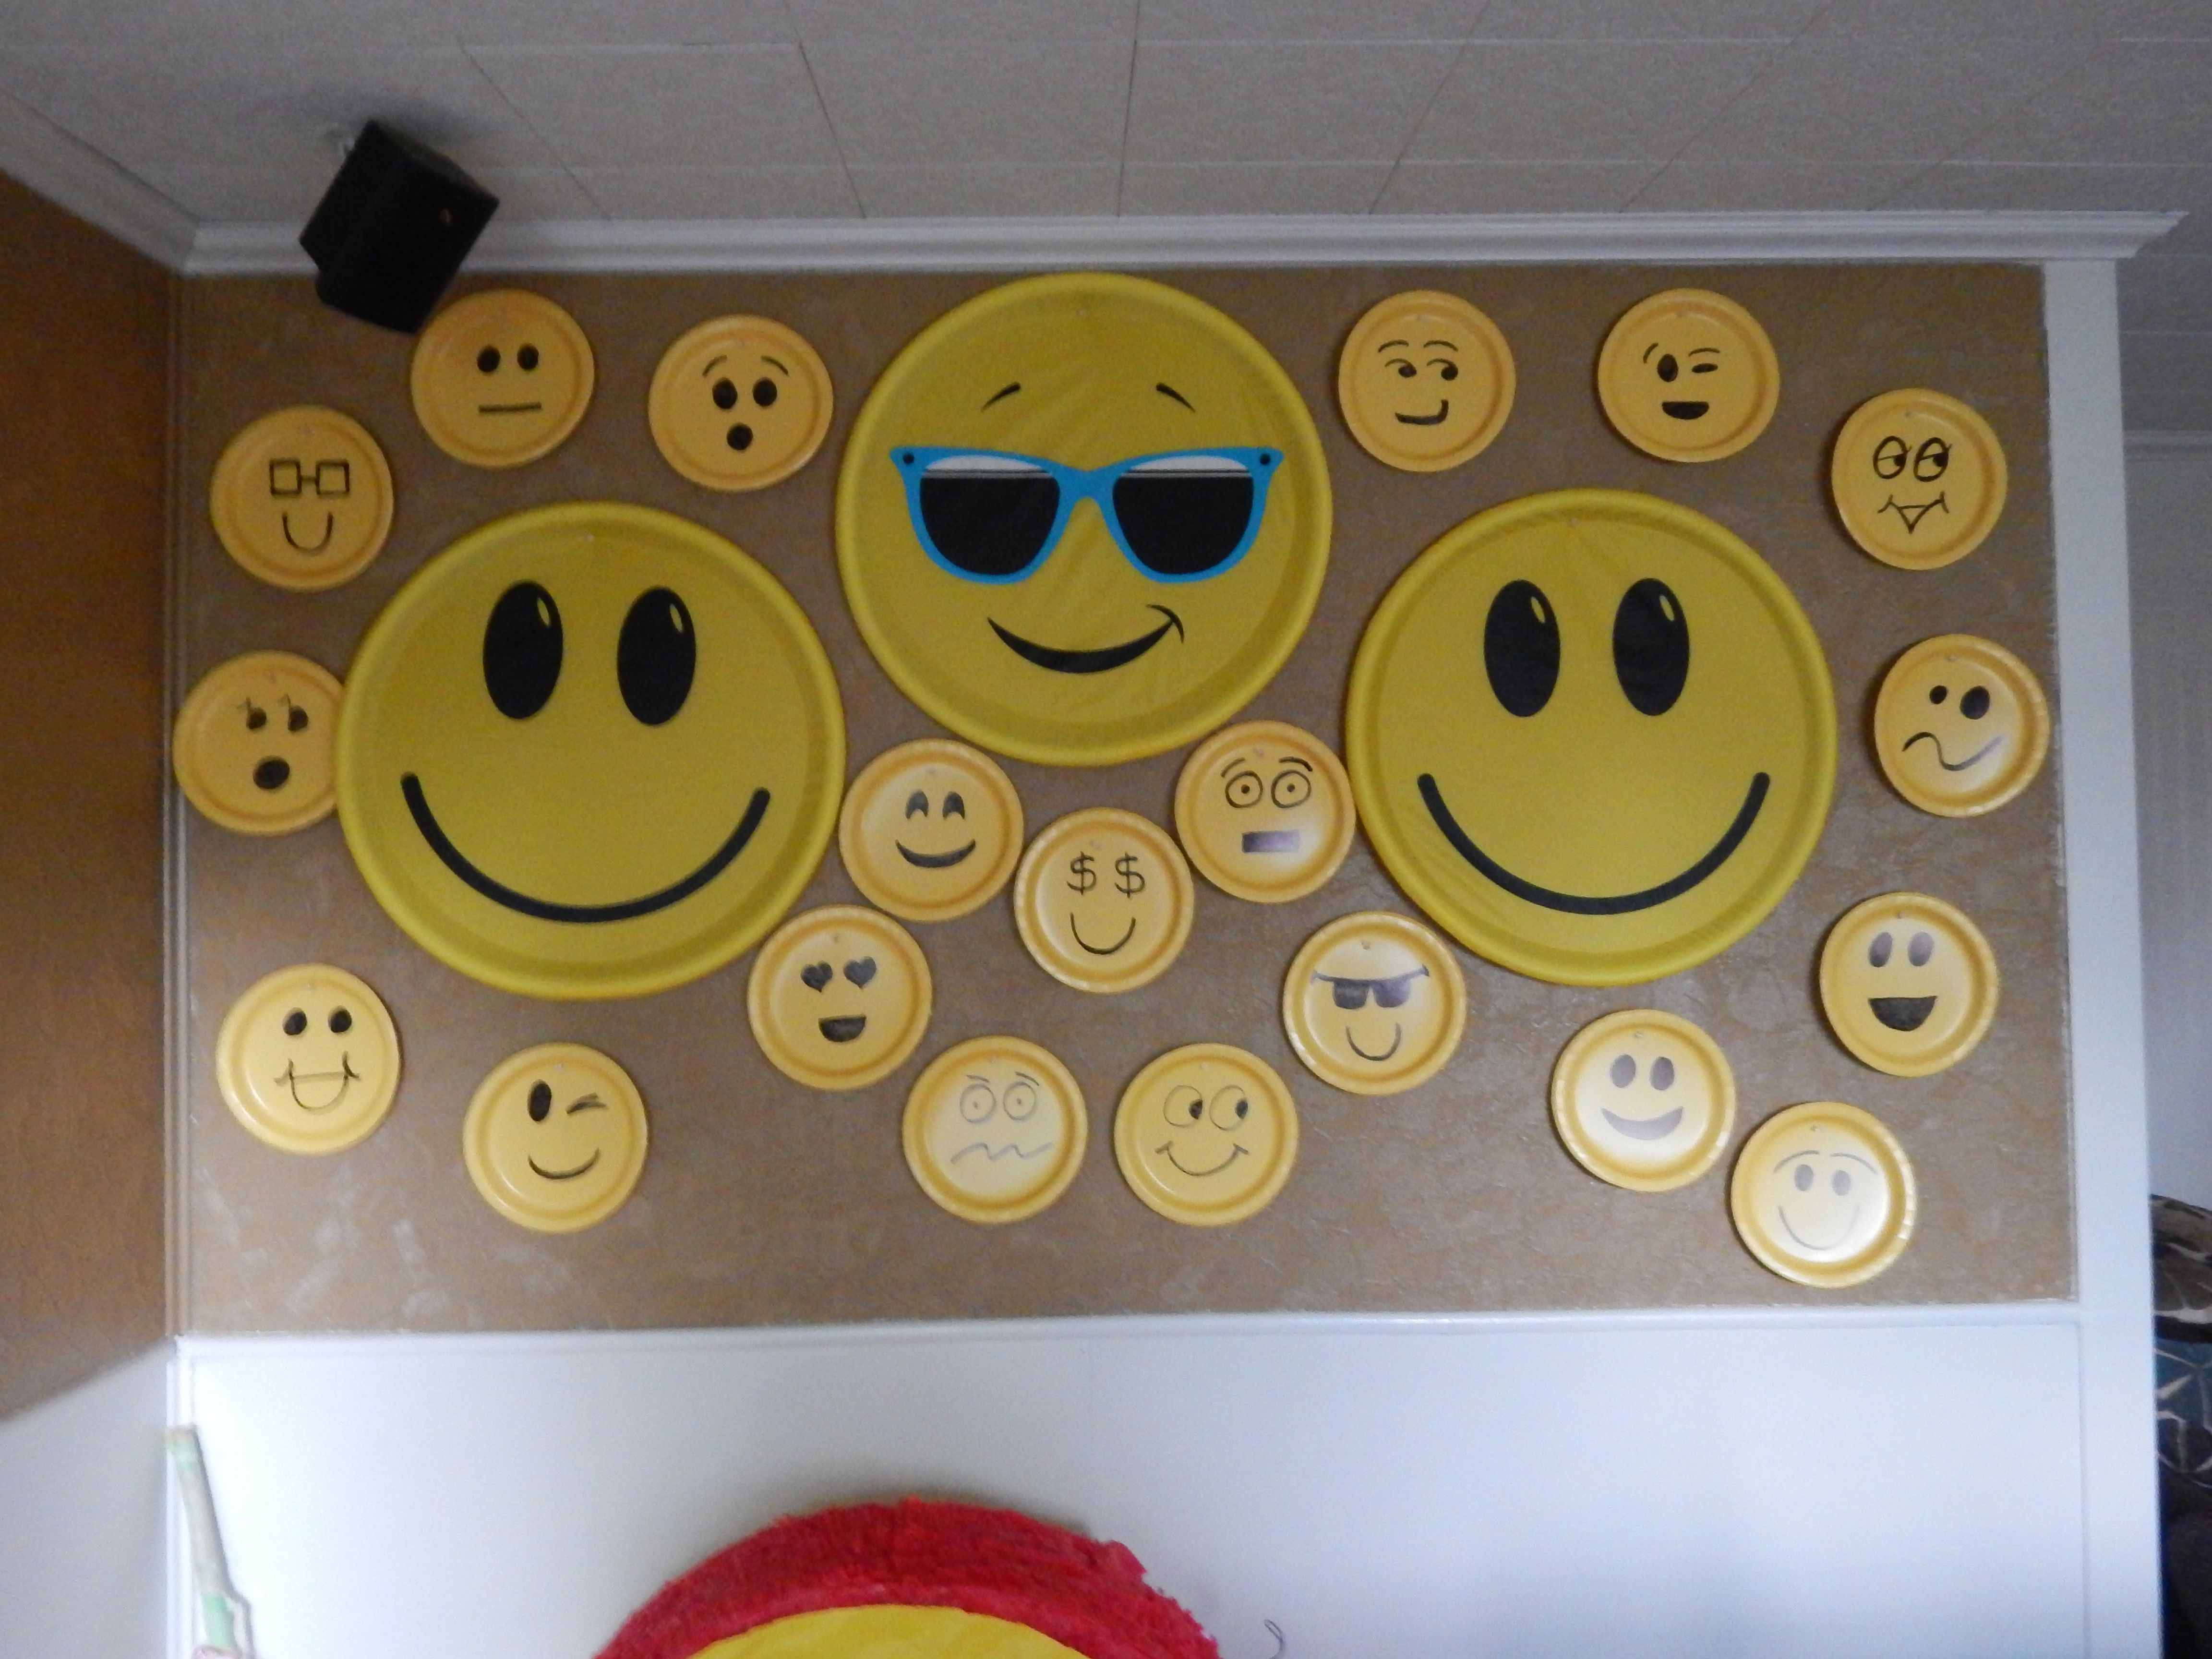 Painted some yellow paper plates & made an Emoji Photo Wall ...